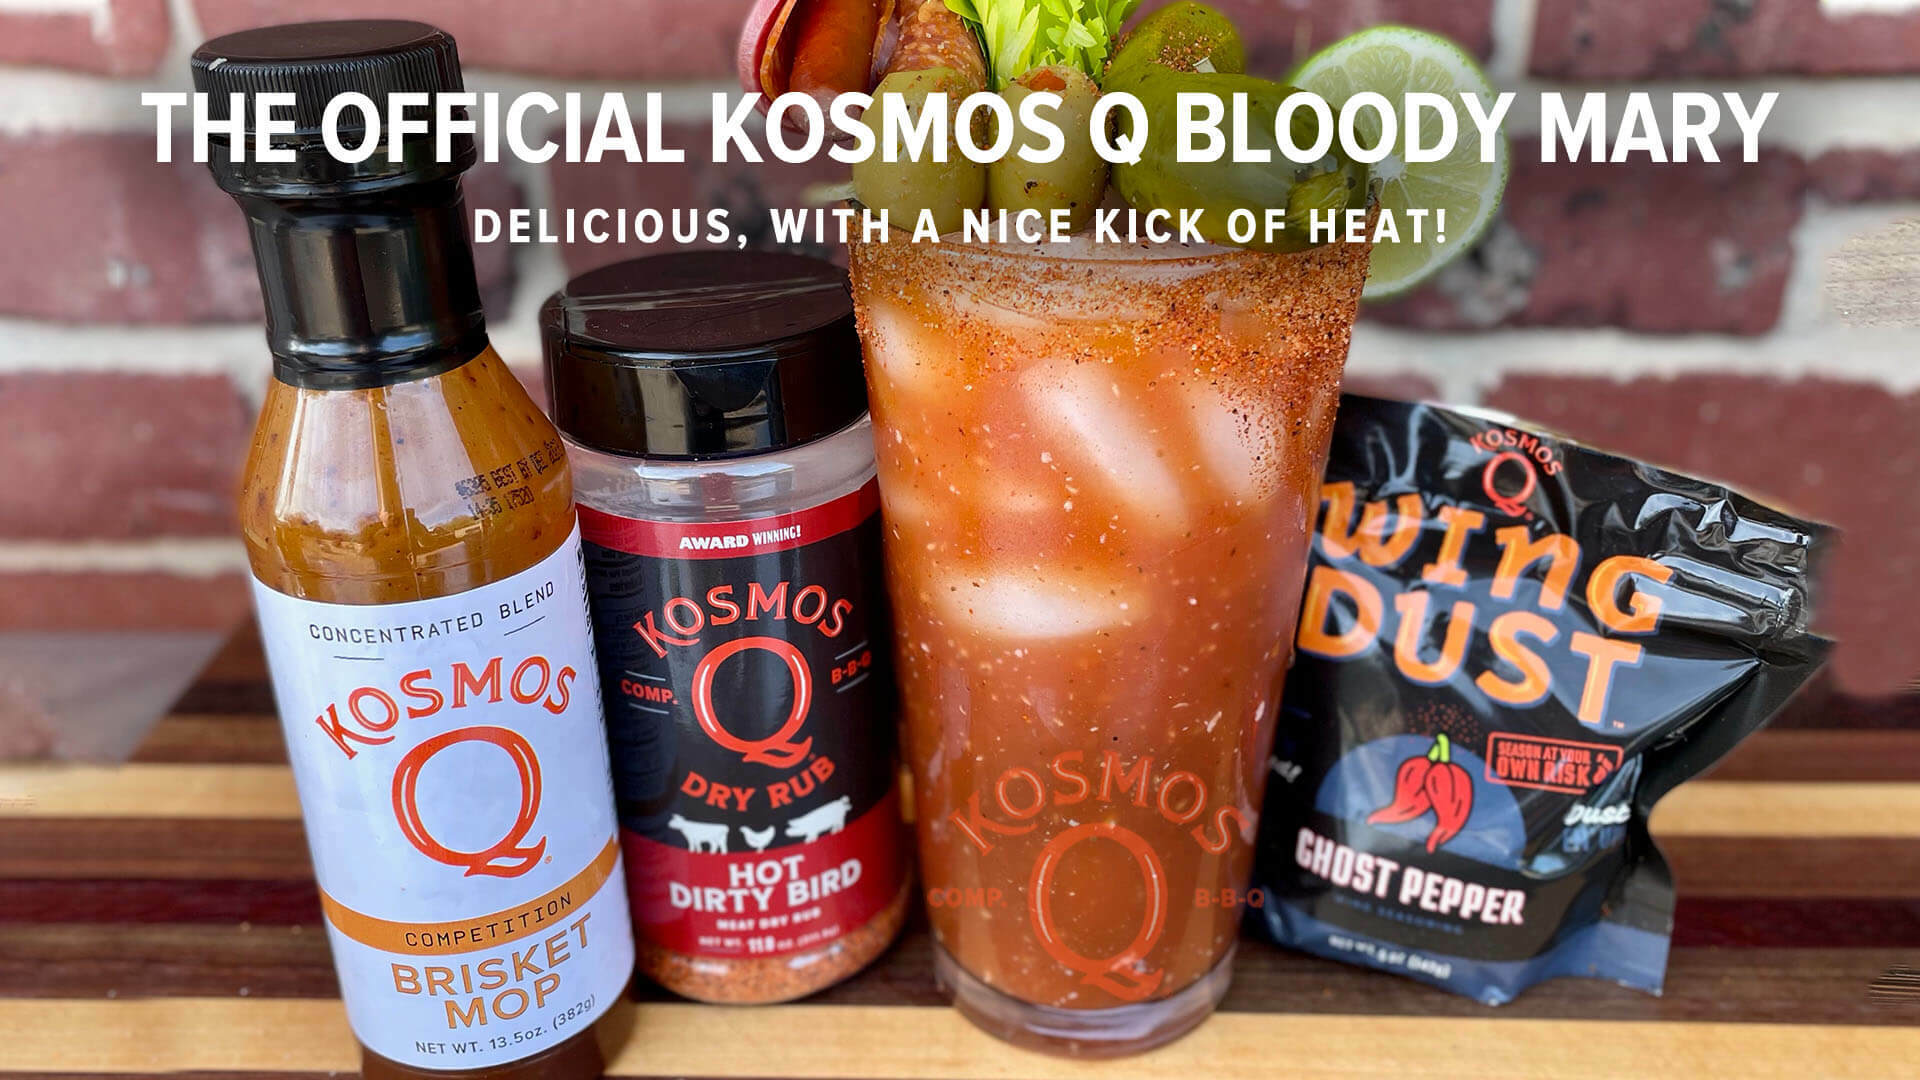 The Official Kosmos Q Bloody Mary